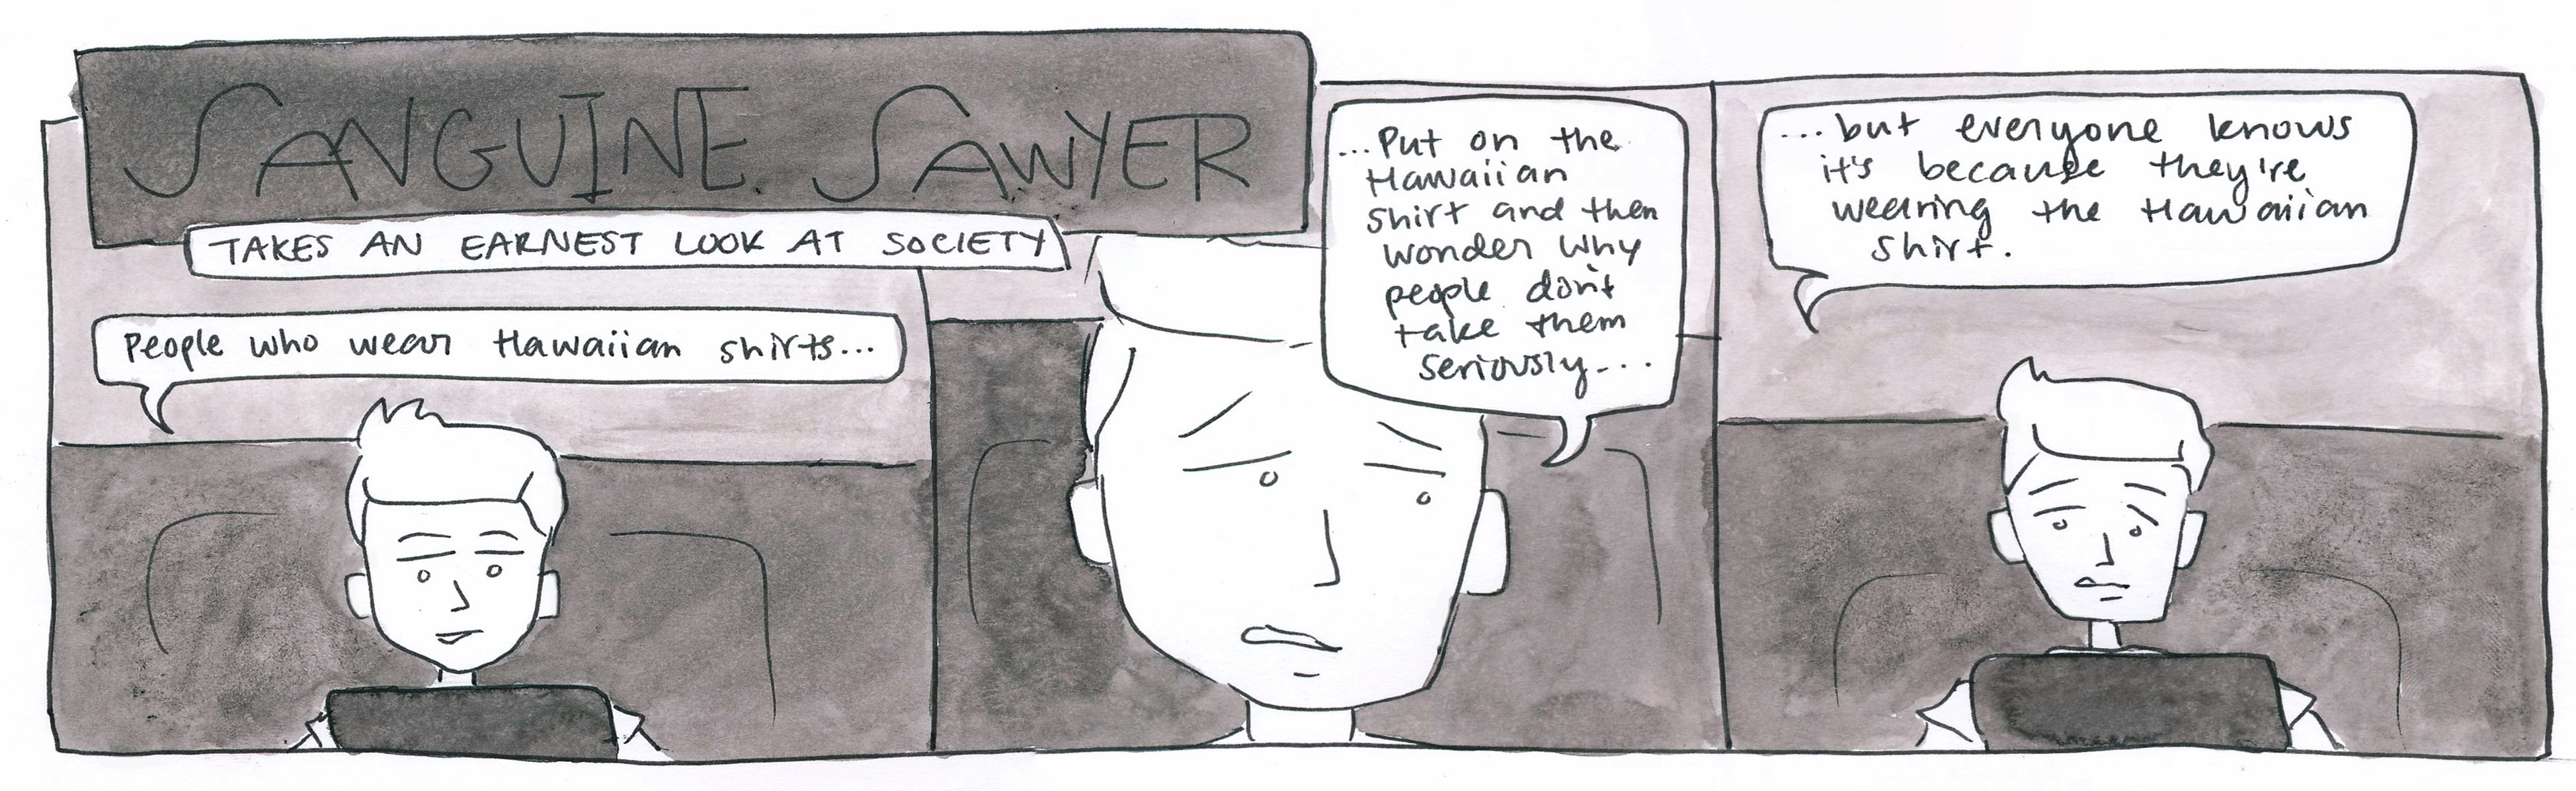 Sawyer Takes a Look at Society